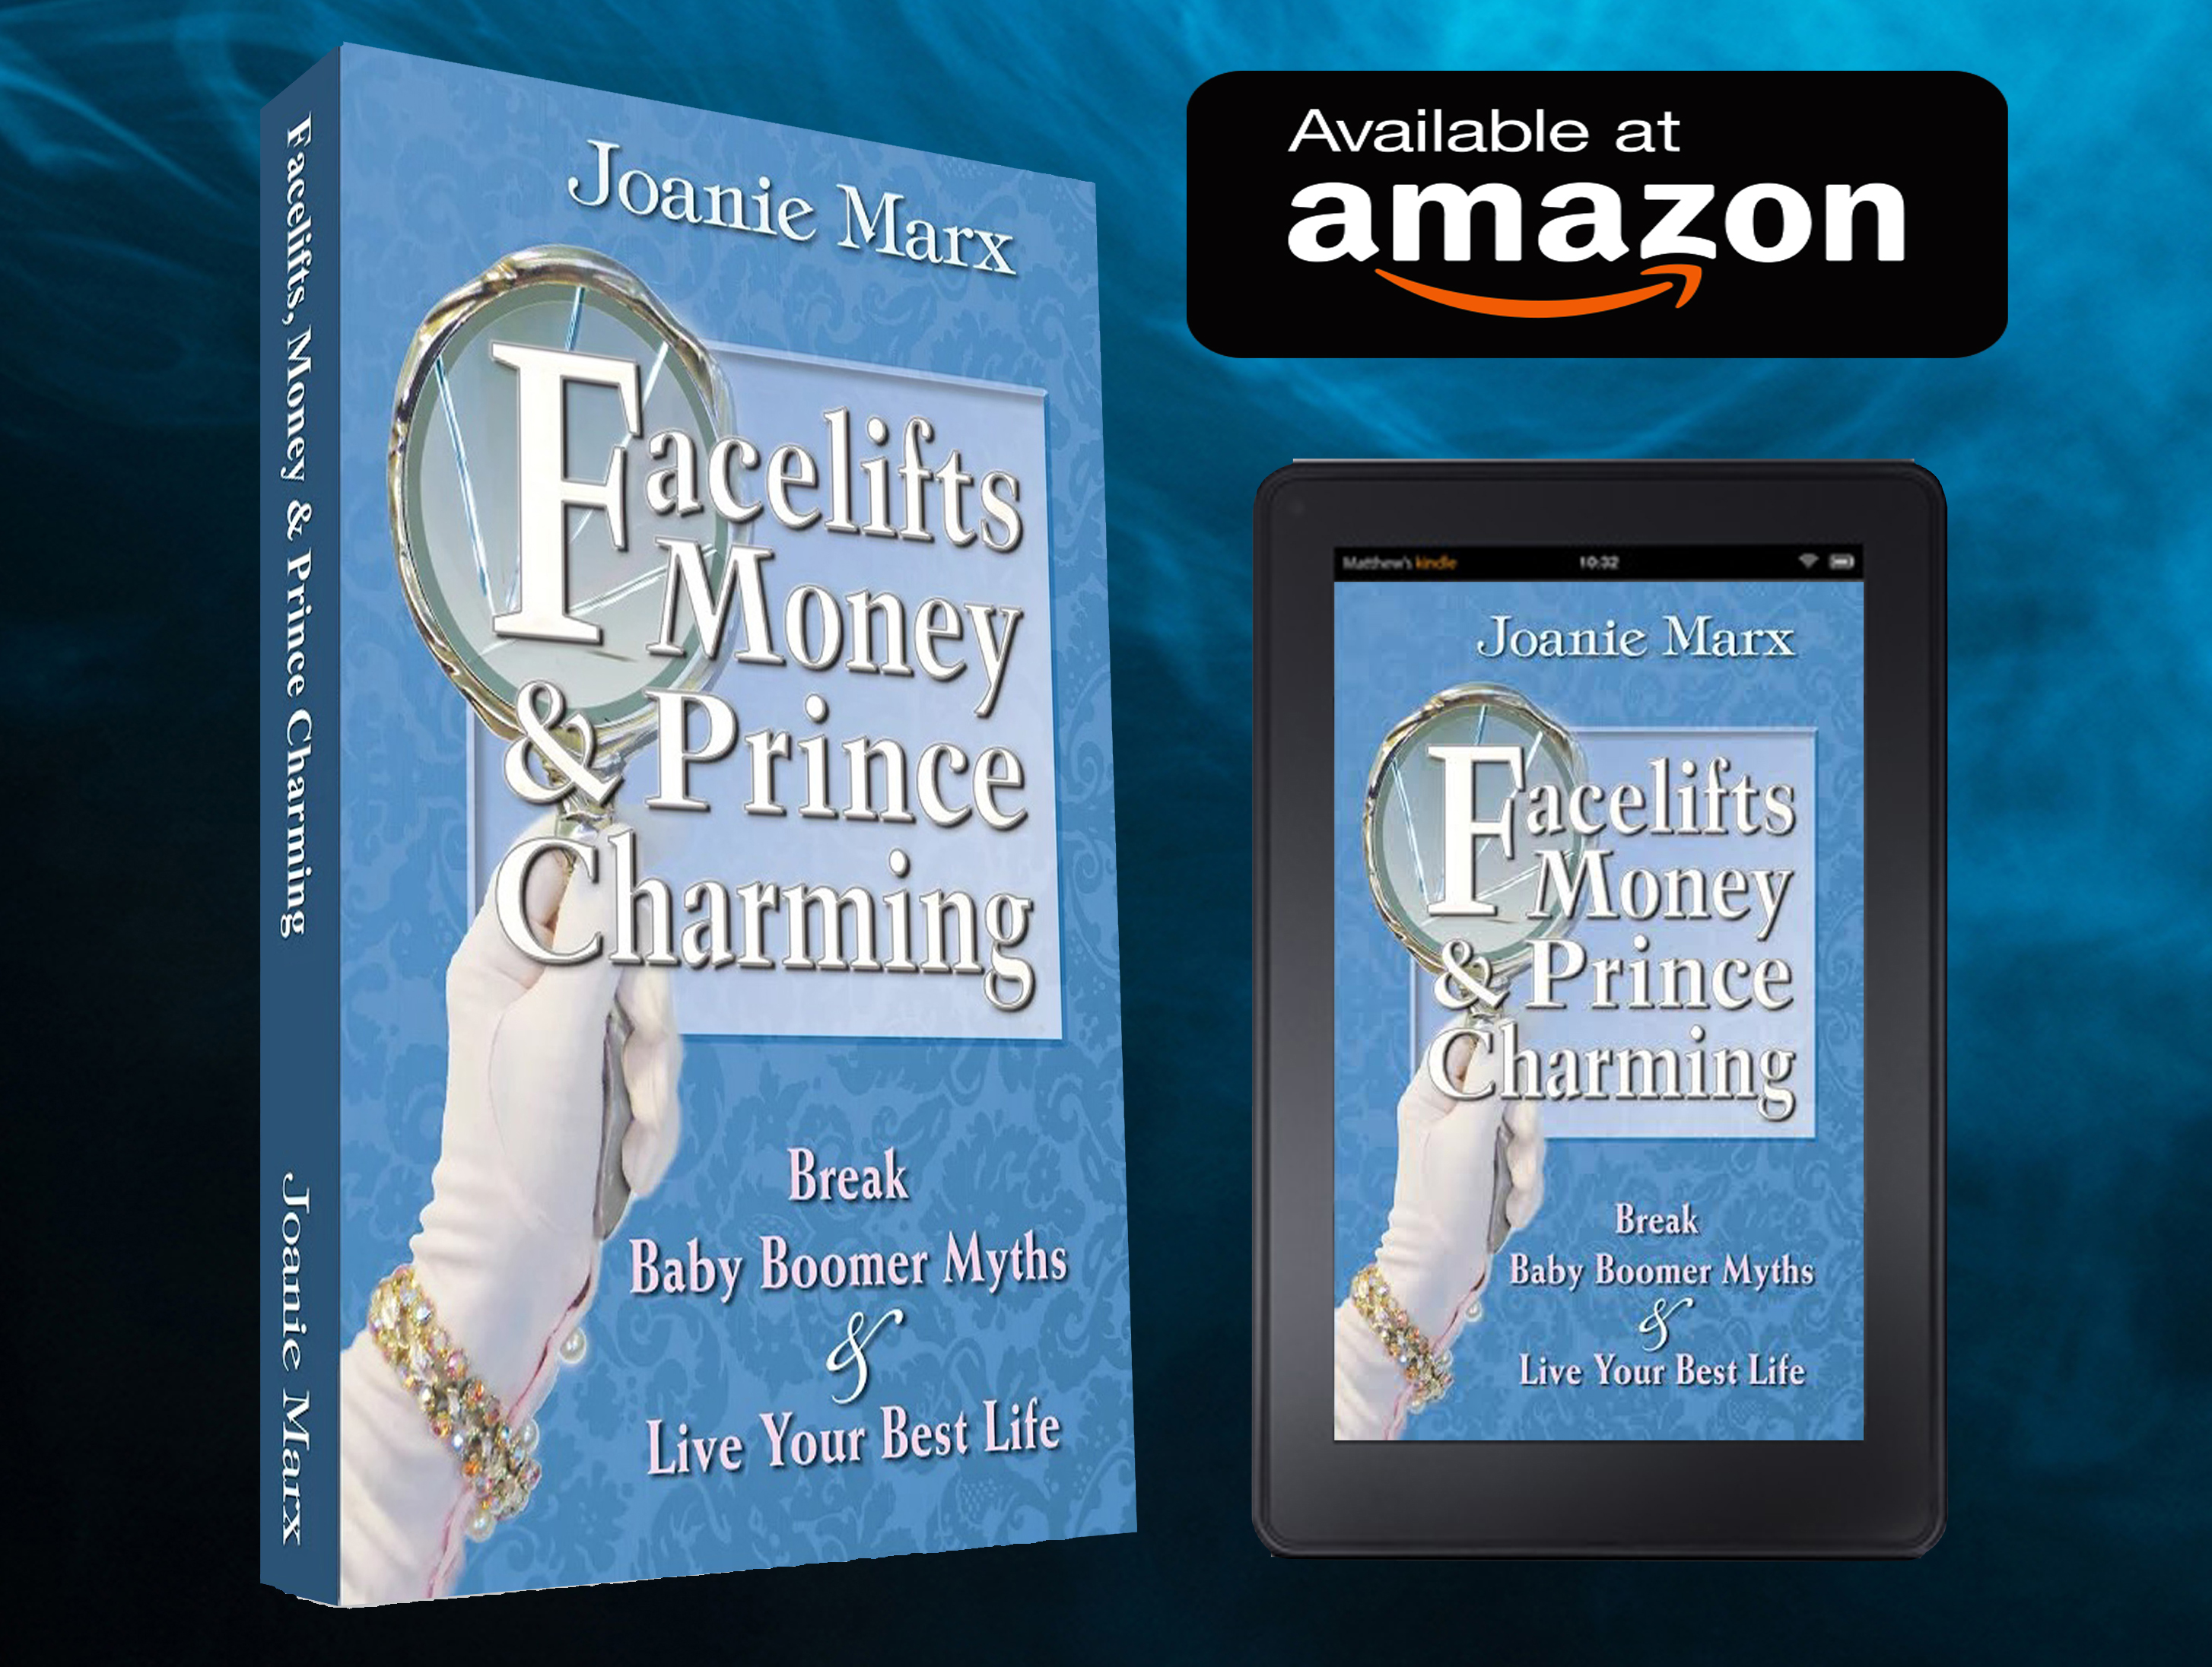 Joanie Marx Book-ad-copy We Can Make Positive Changes Book Excerpts Invisible Customer With All the Money™ Refocus & Renew Your Life™ Uncategorized